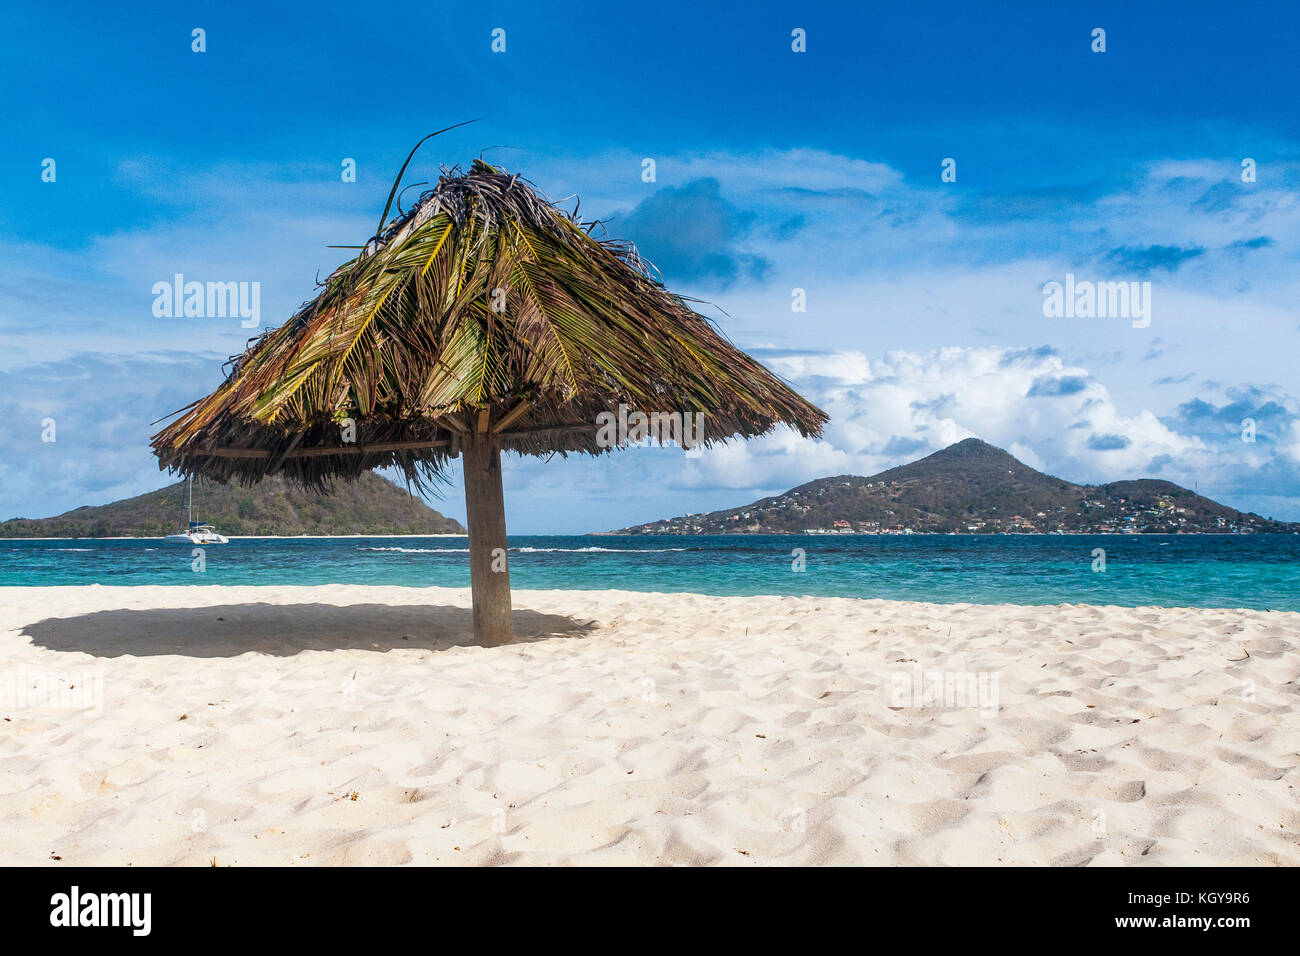 martinique stock photos martinique stock images alamy. Black Bedroom Furniture Sets. Home Design Ideas